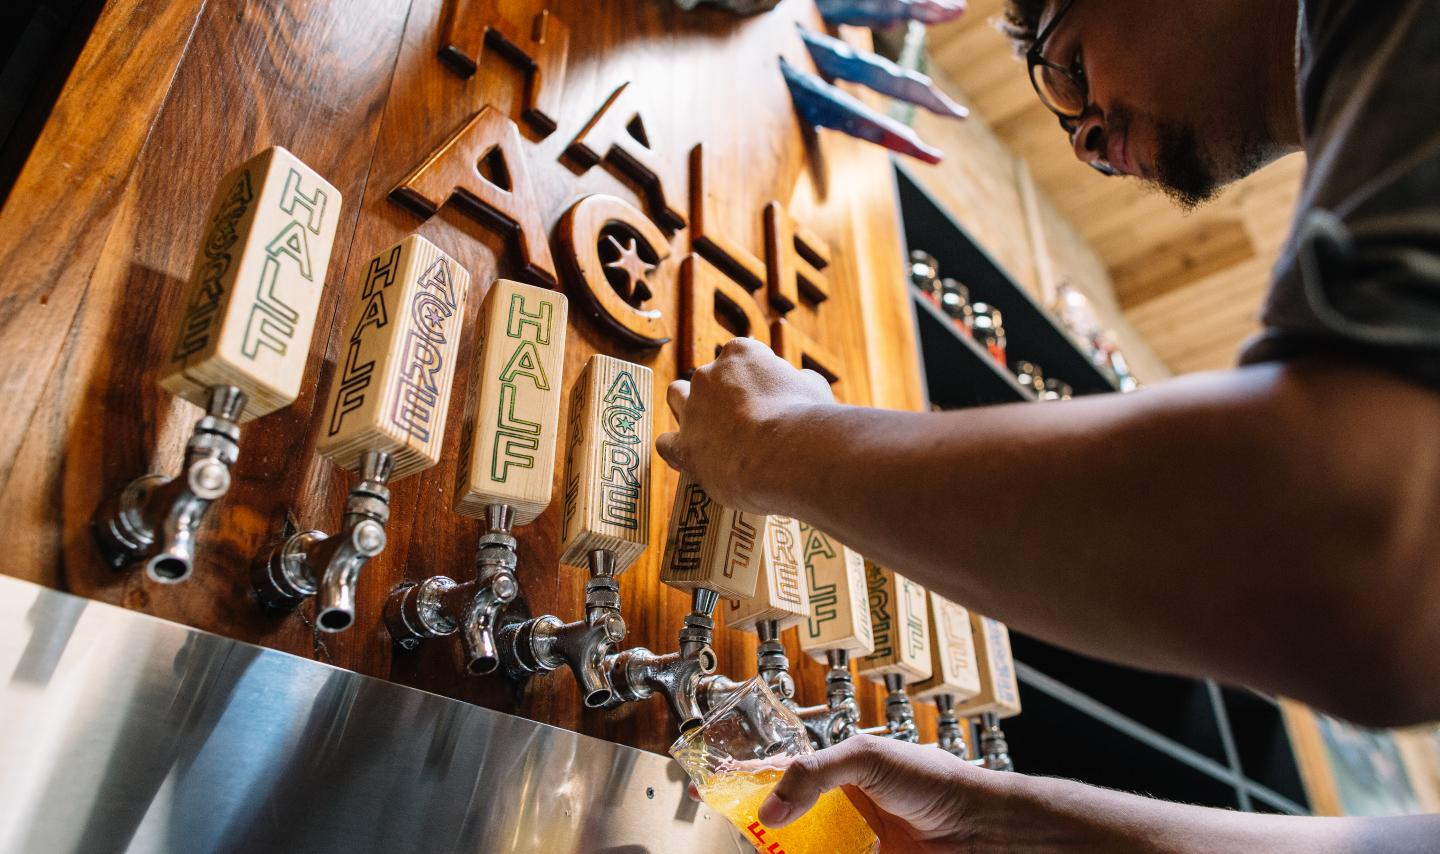 Chicago craft brewery itineraries: Ravenswood Corridor